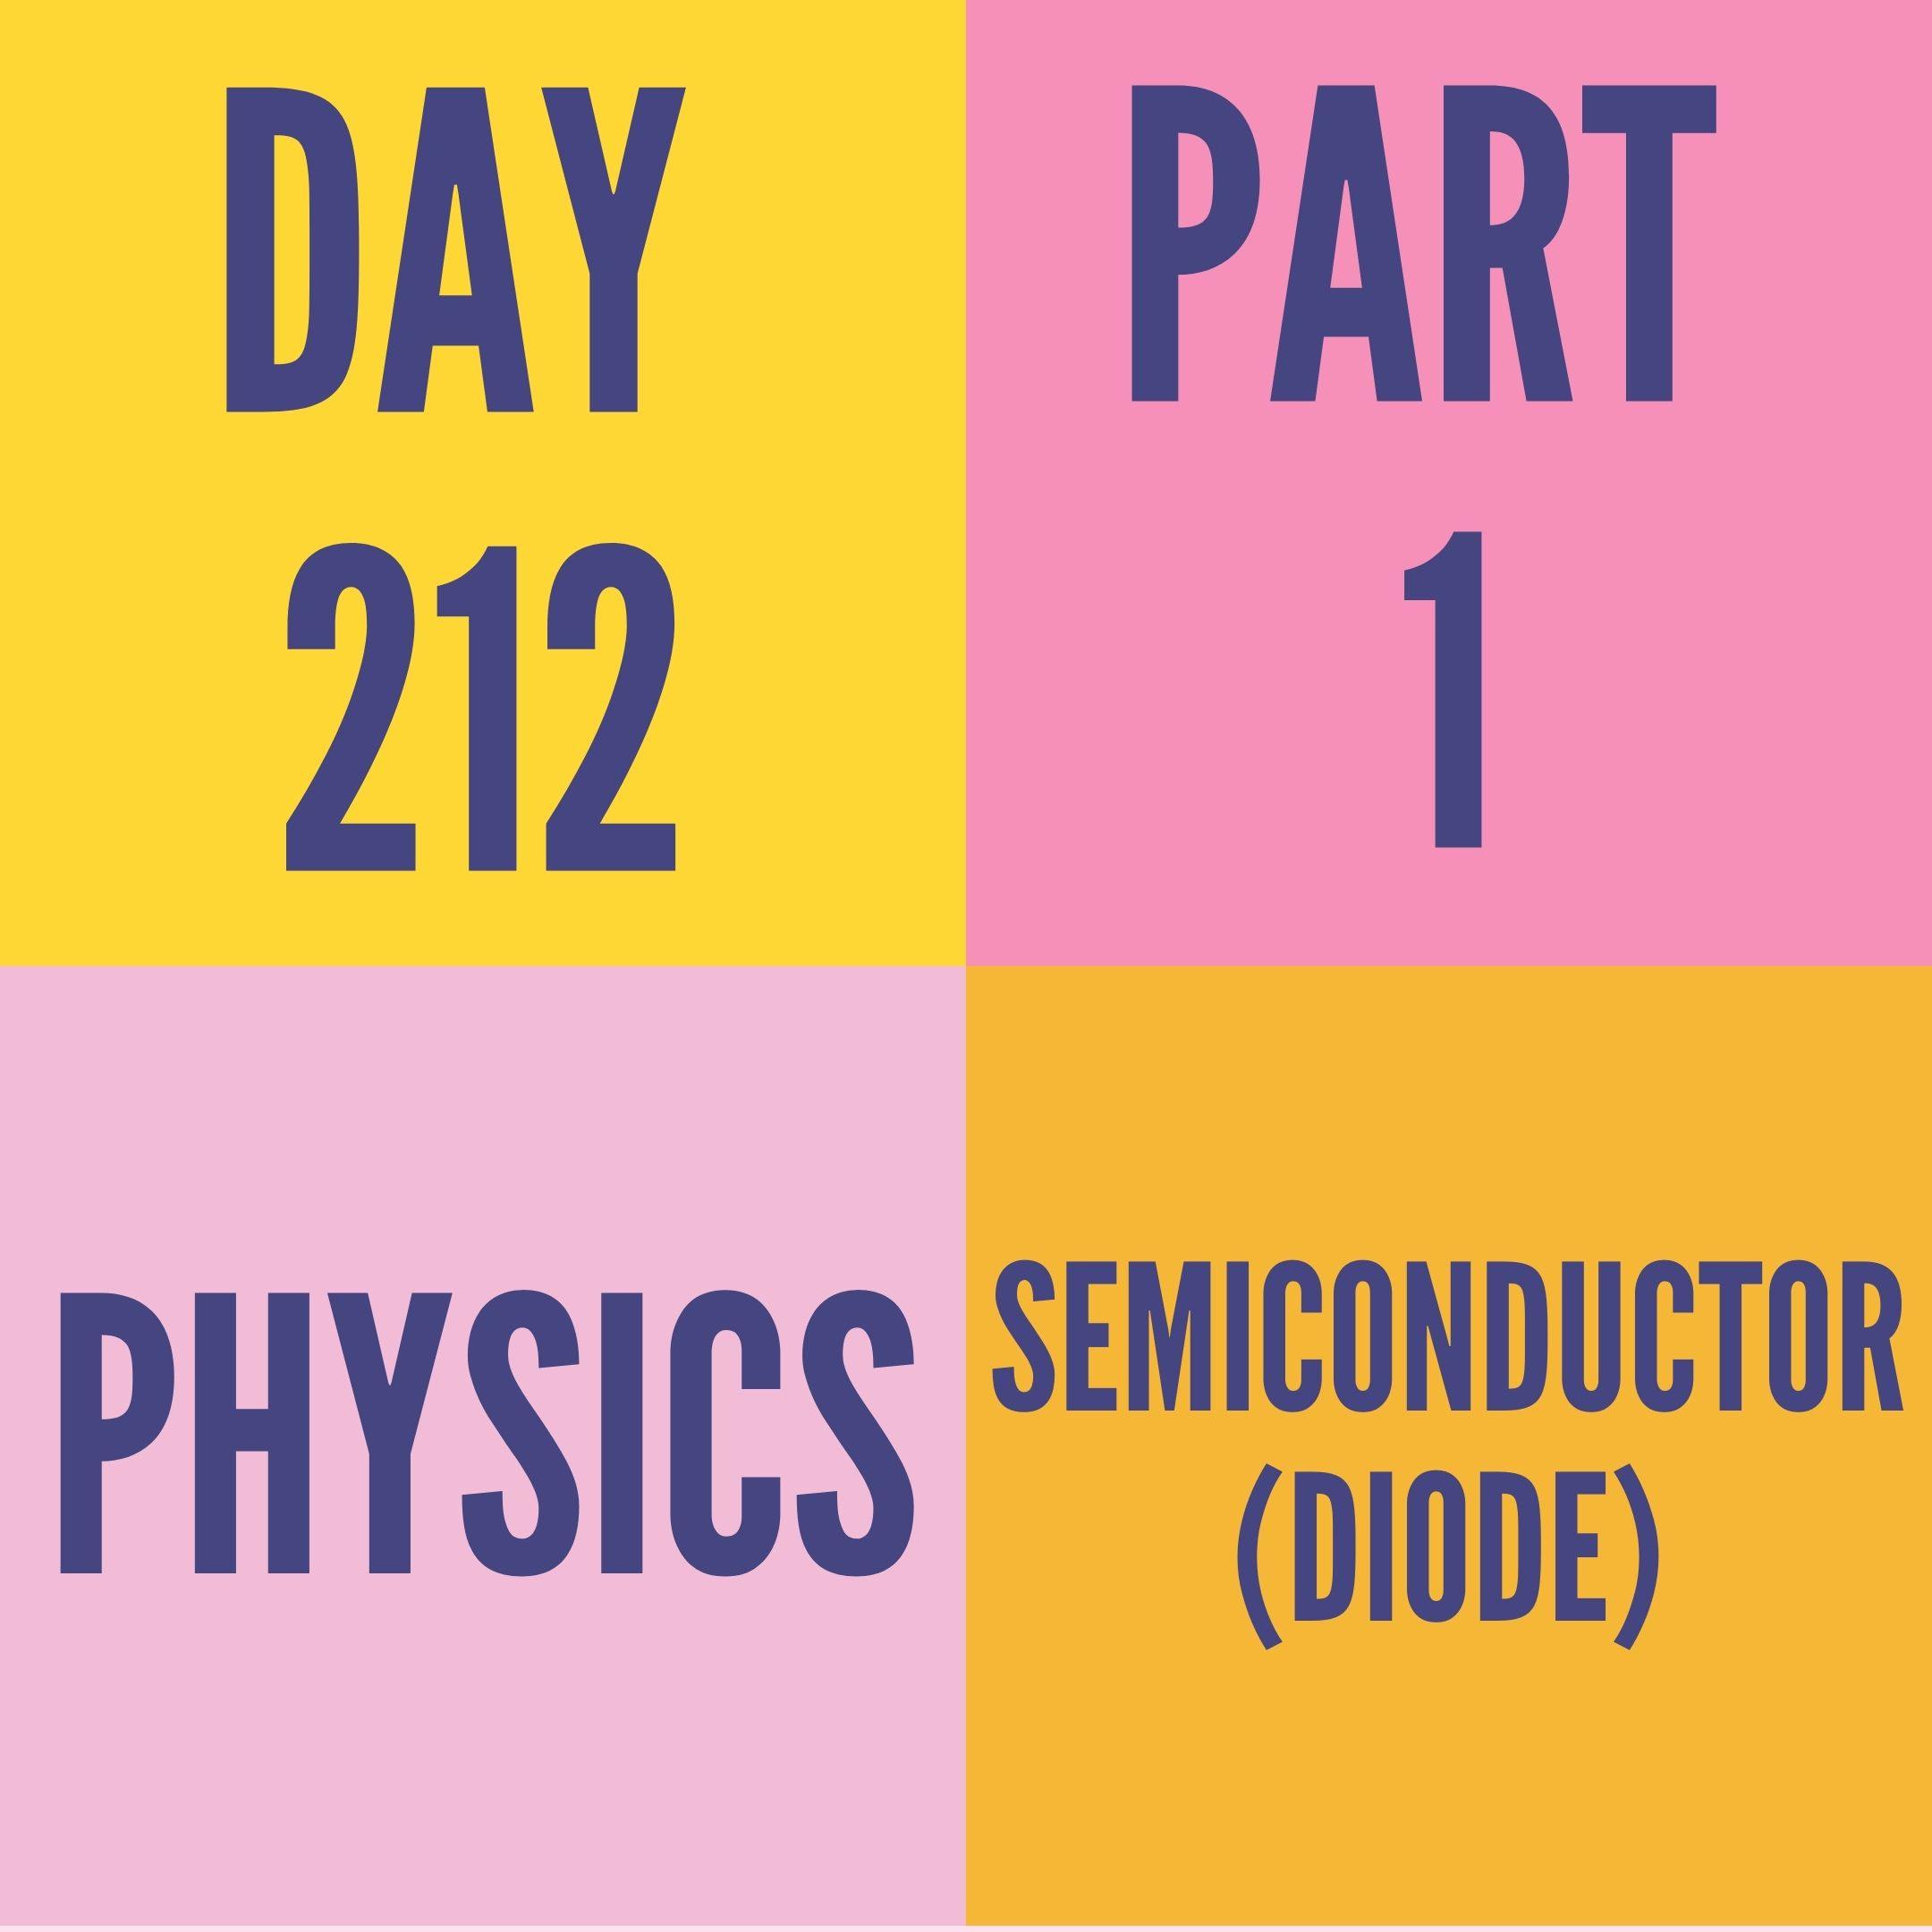 DAY-212 PART-1 SEMICONDUCTOR (DIODE)